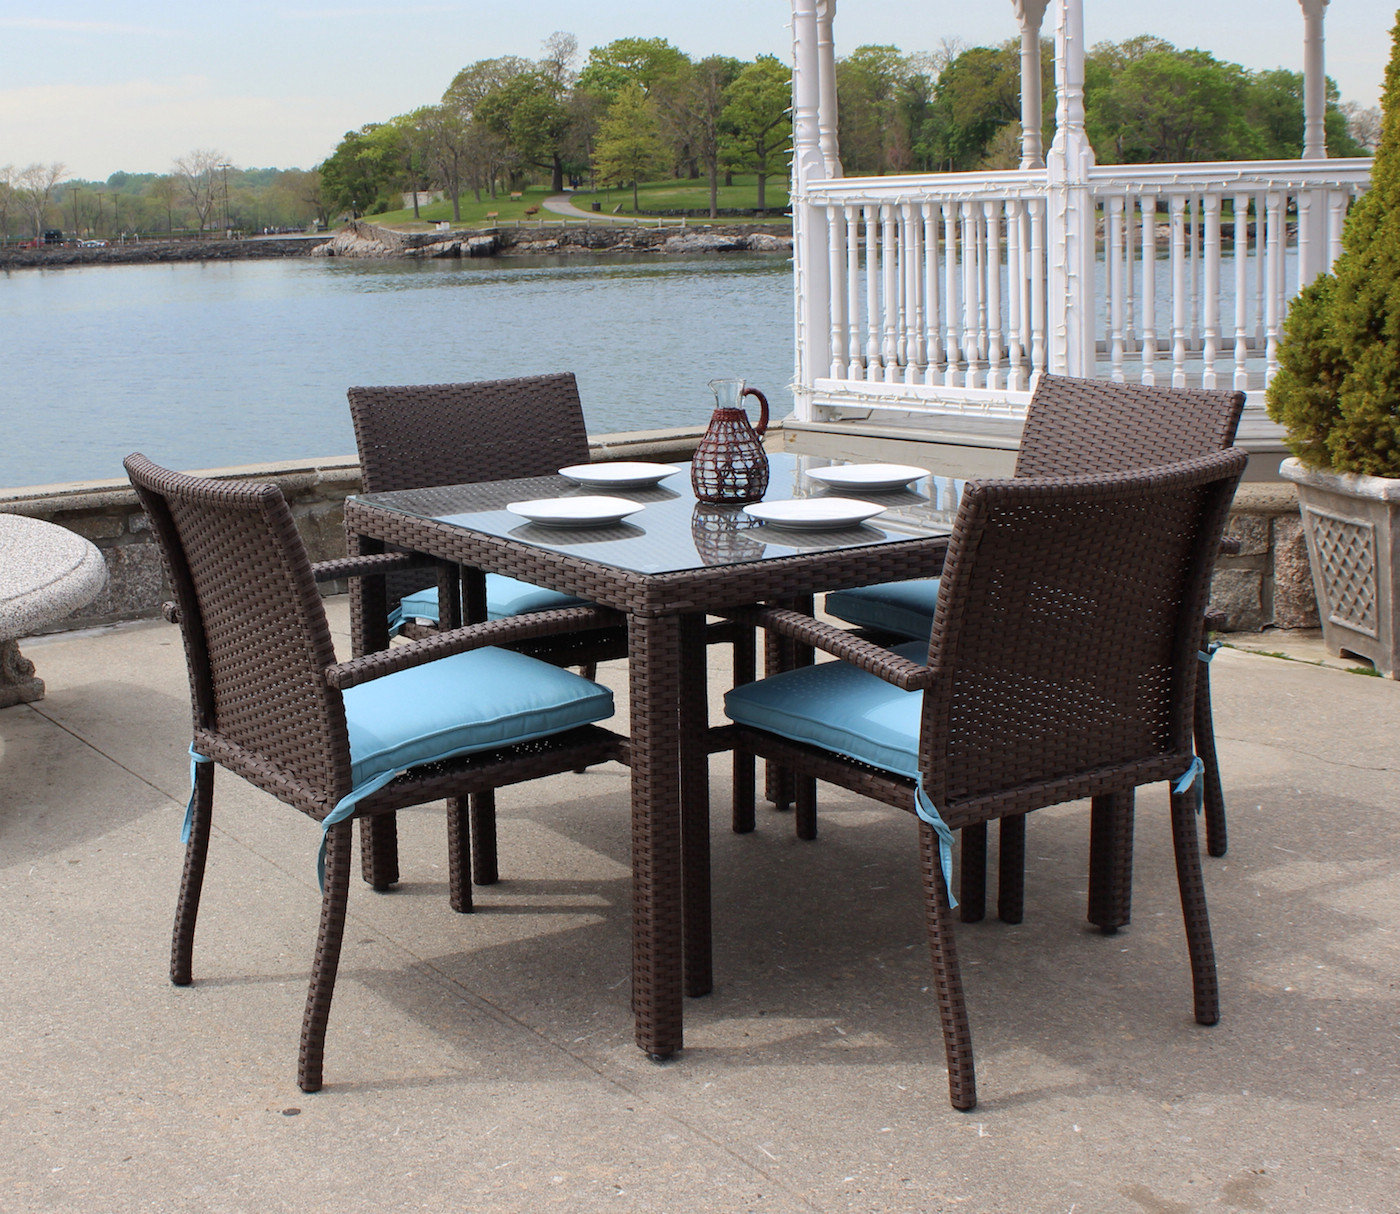 Best ideas about Patio Dining Set . Save or Pin Wicker Patio Dining Set of 5 Brown Now.